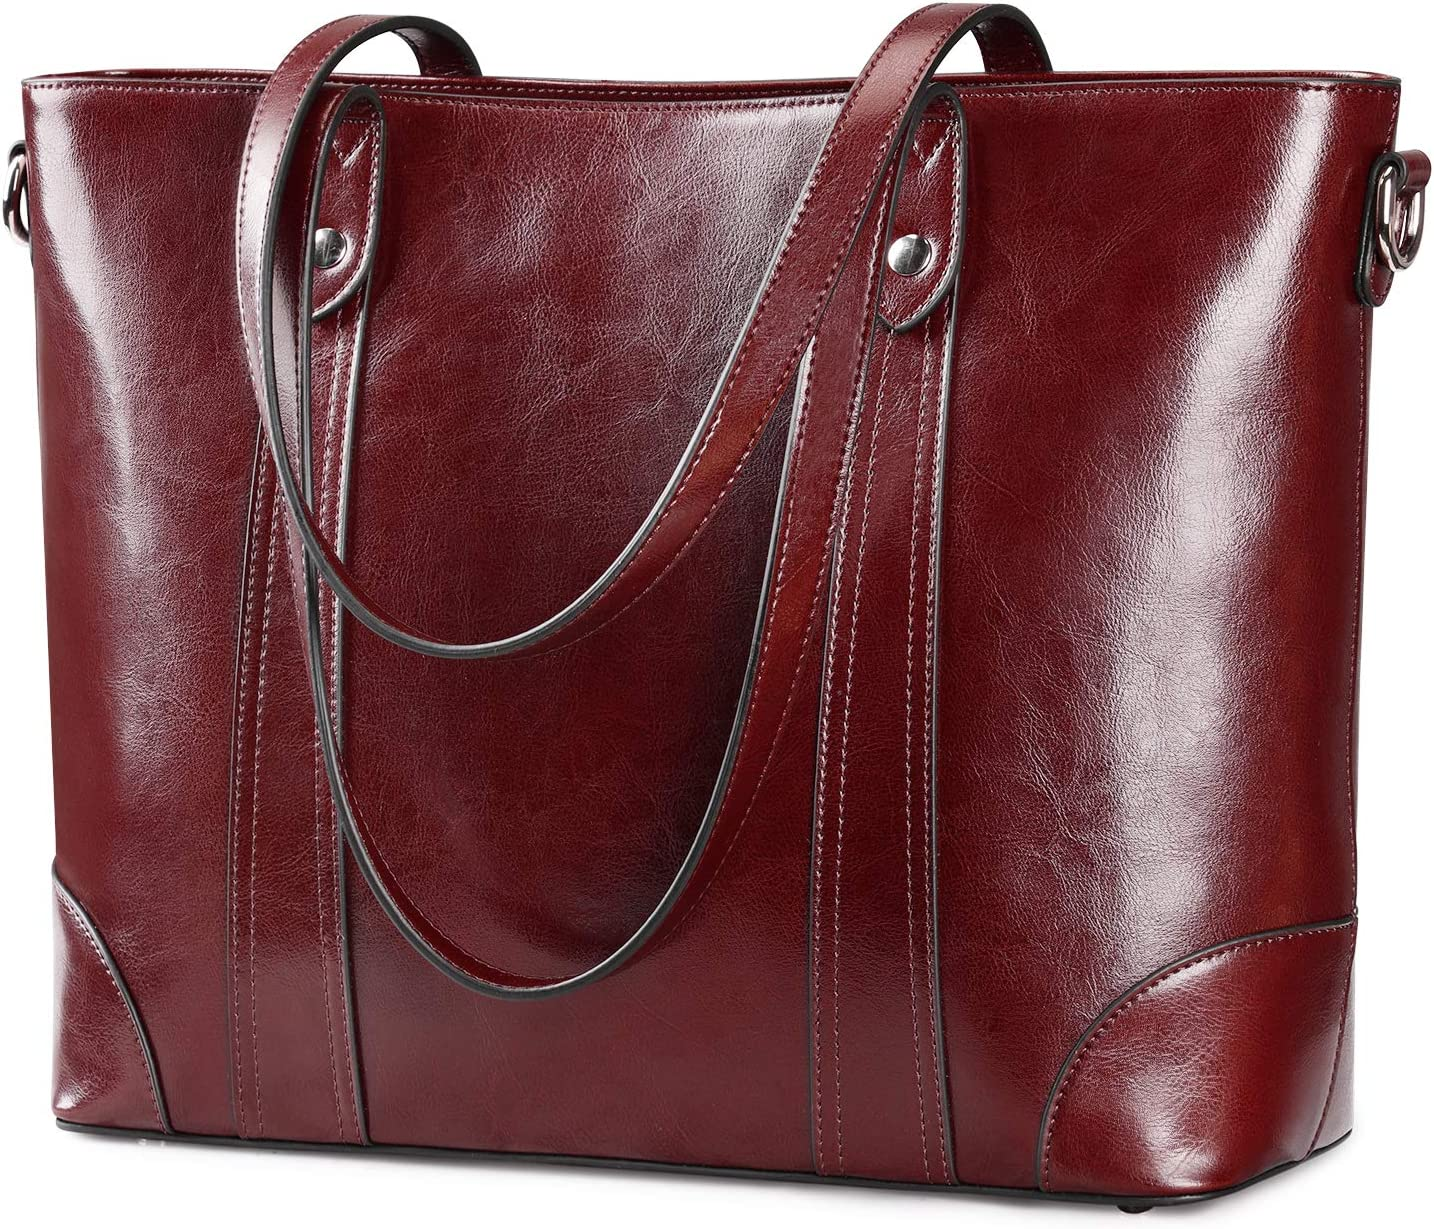 S-ZONE 15.6 Inch Leather Laptop Bag for Women Shoulder Handbag Large Work Tote (Wine Red)